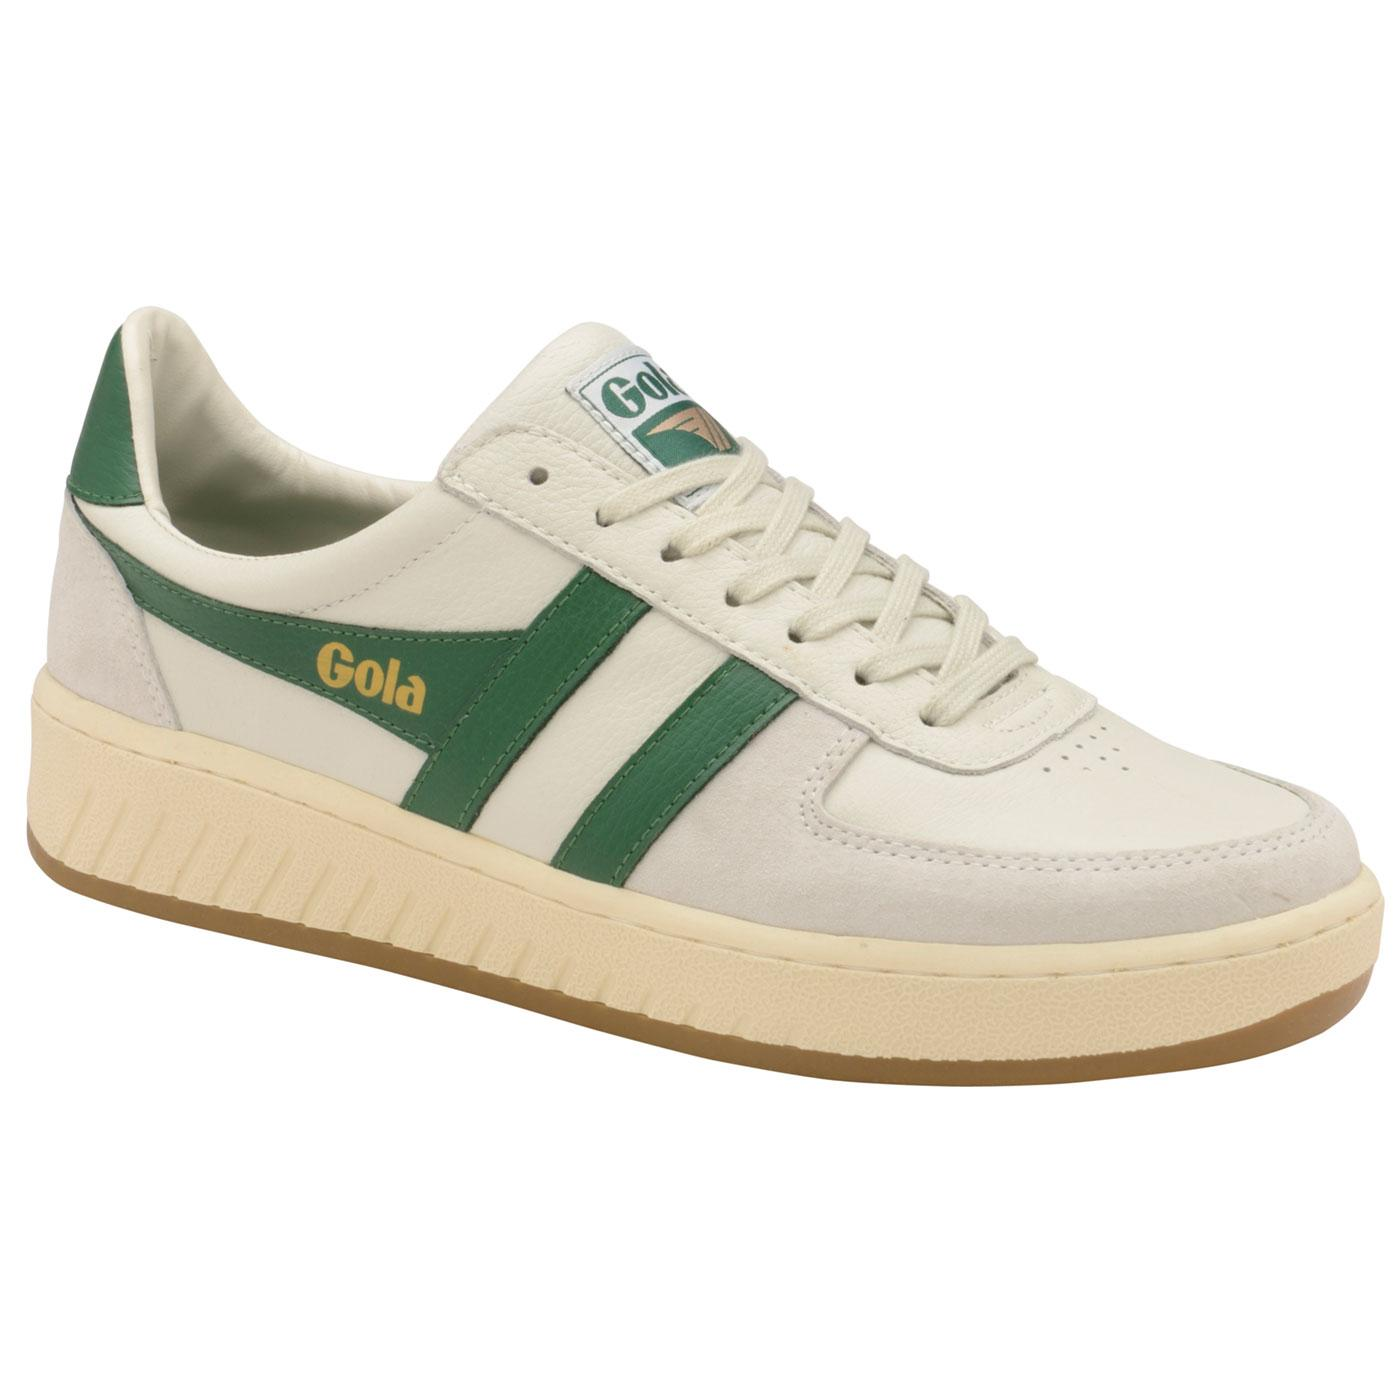 Grandslam 78 GOLA Retro 1970s Archive Trainers W/G